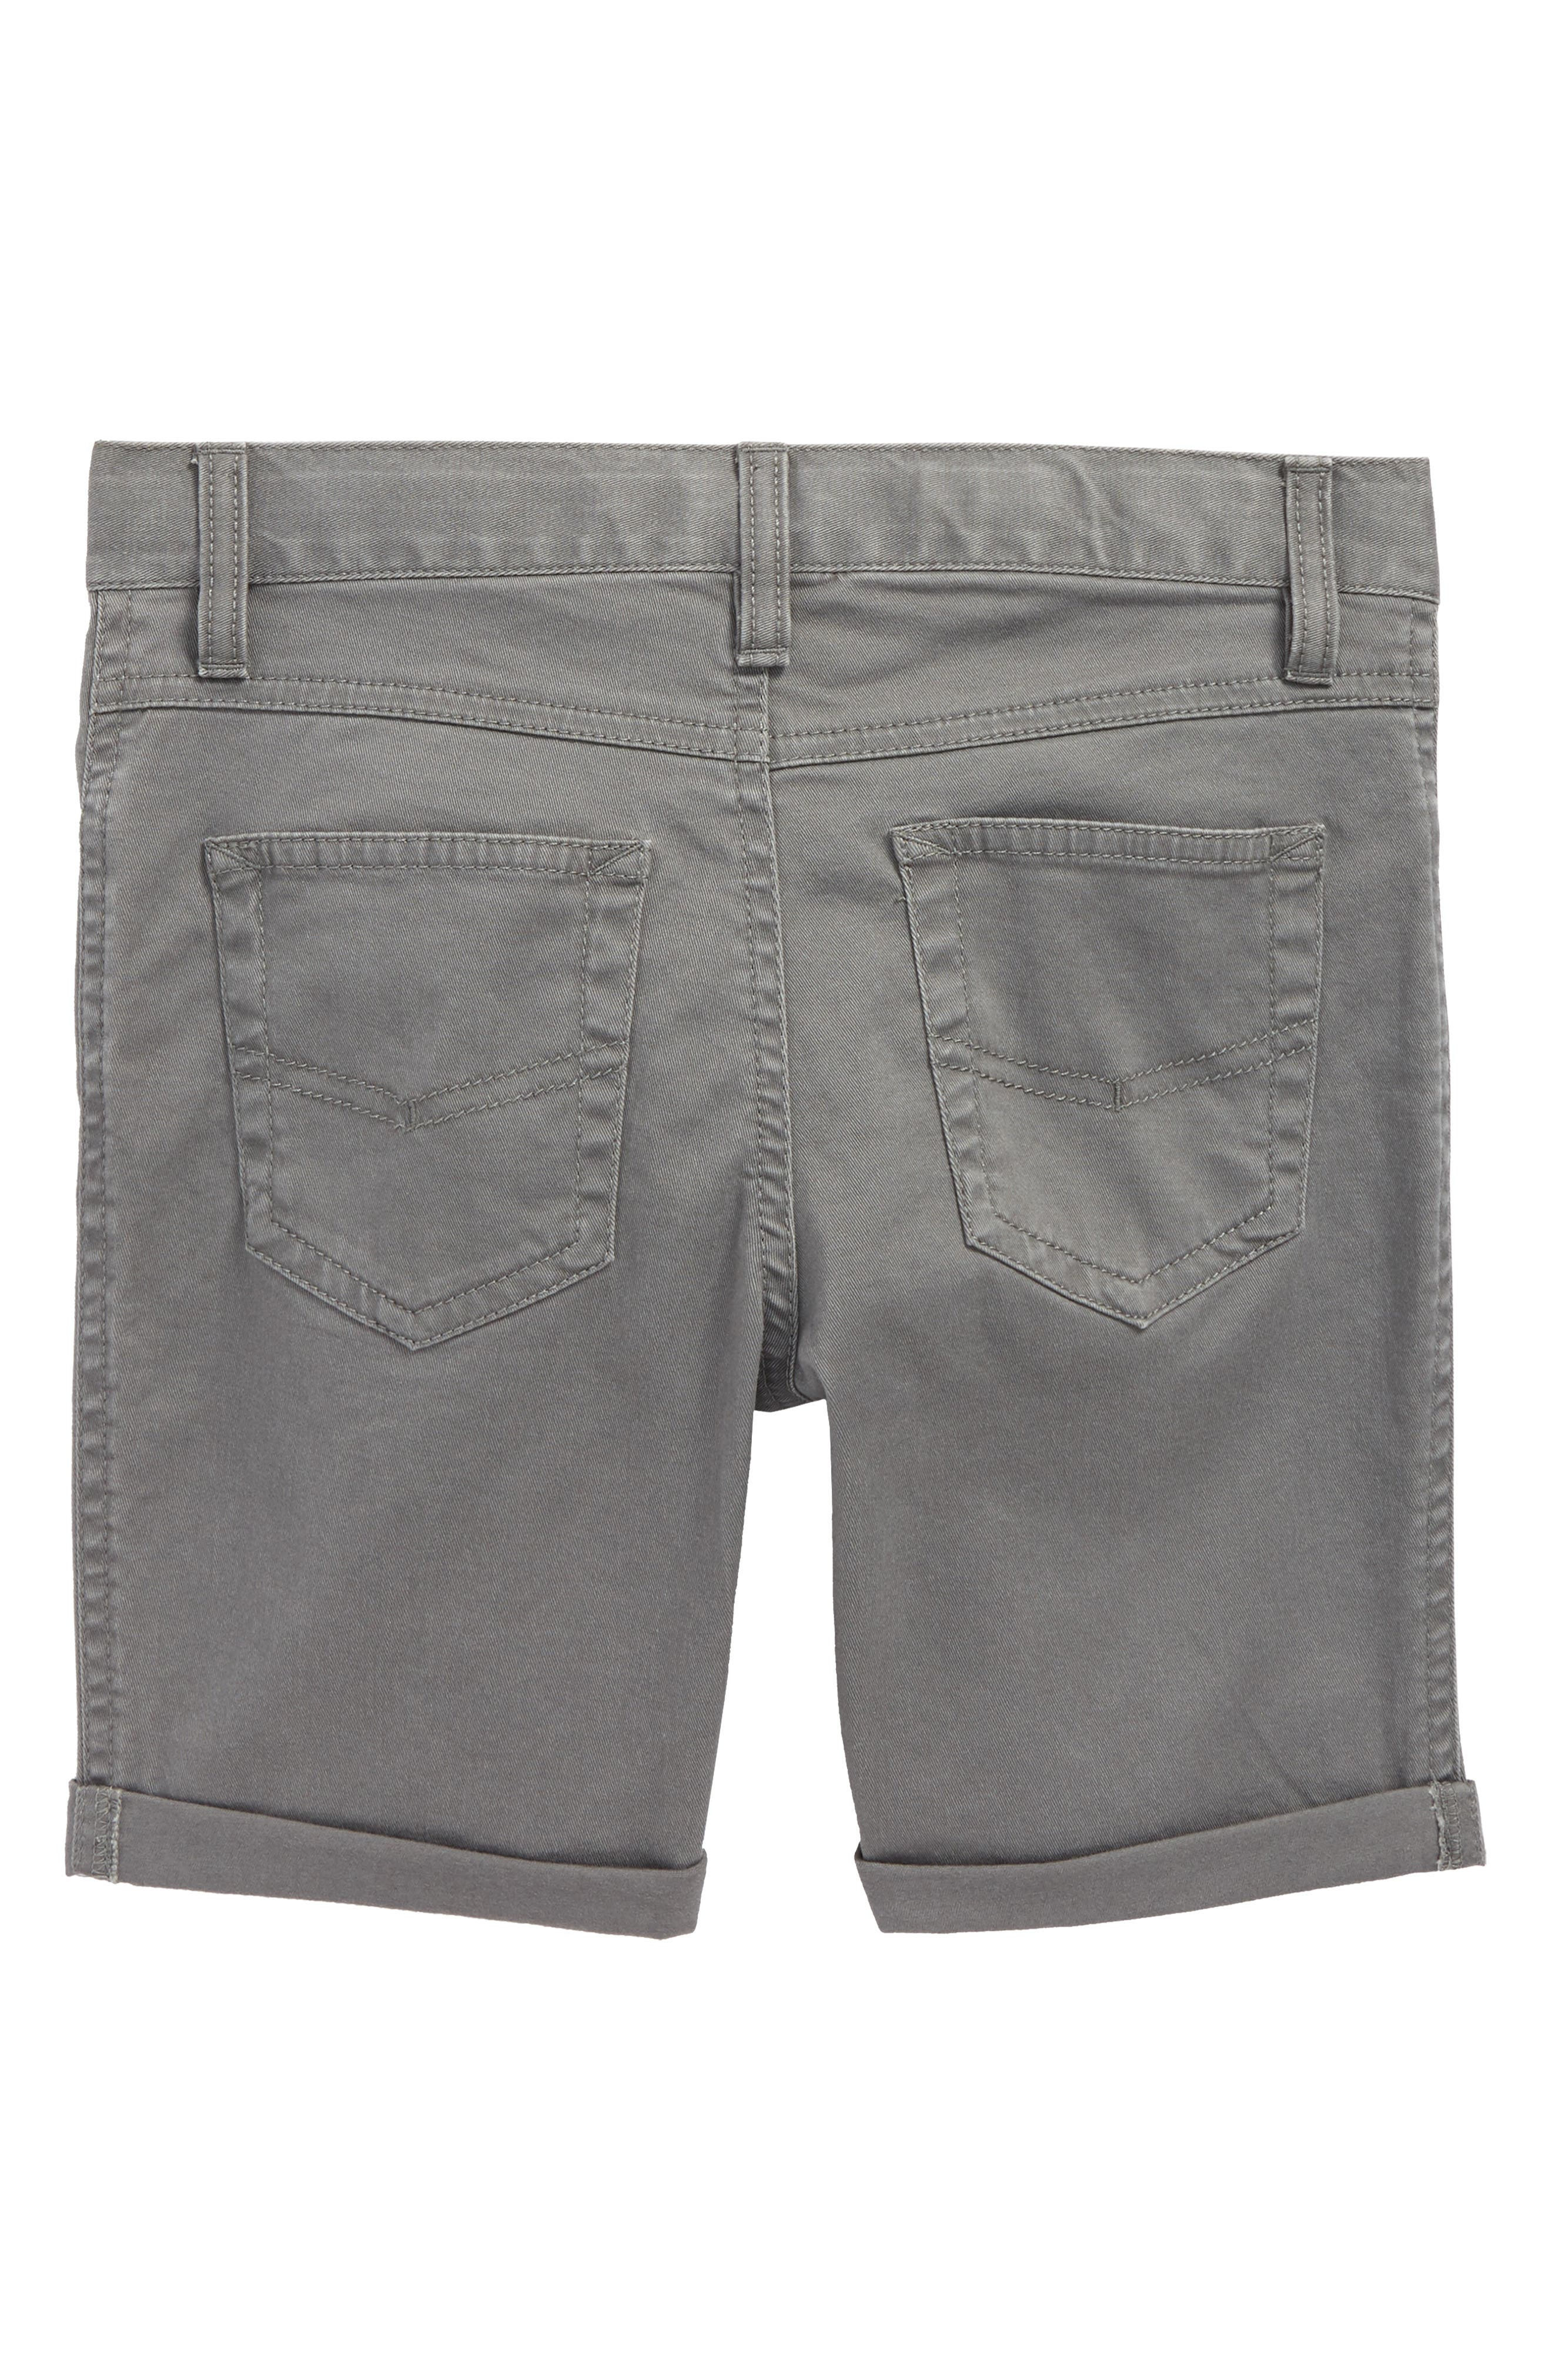 Stretch Twill Shorts,                             Alternate thumbnail 2, color,                             021